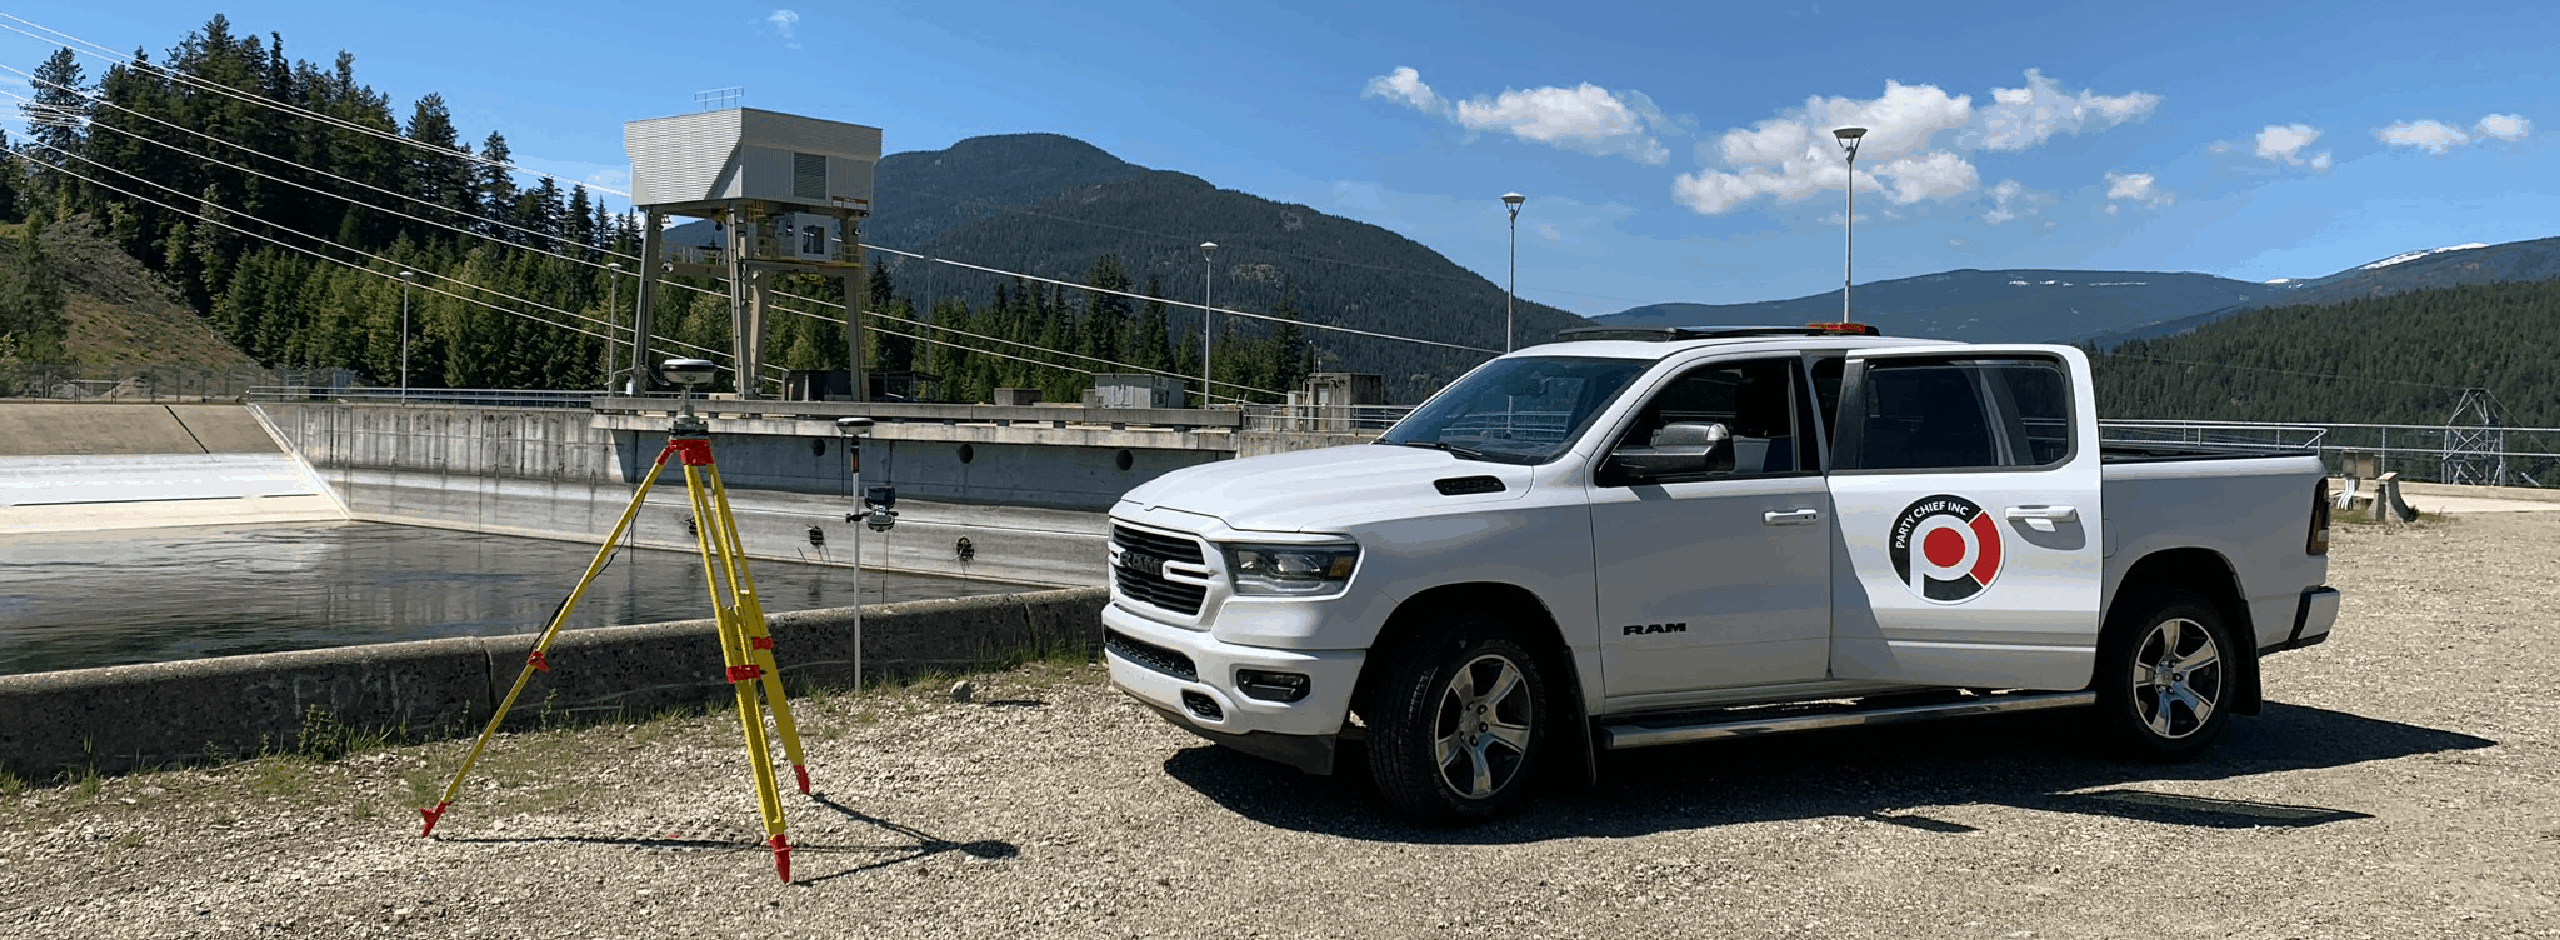 Surveying, utility line locating, uav and damage prevention services. With offices in Prince George and Sherwood park we service from Edmonton to Prince Rupert.